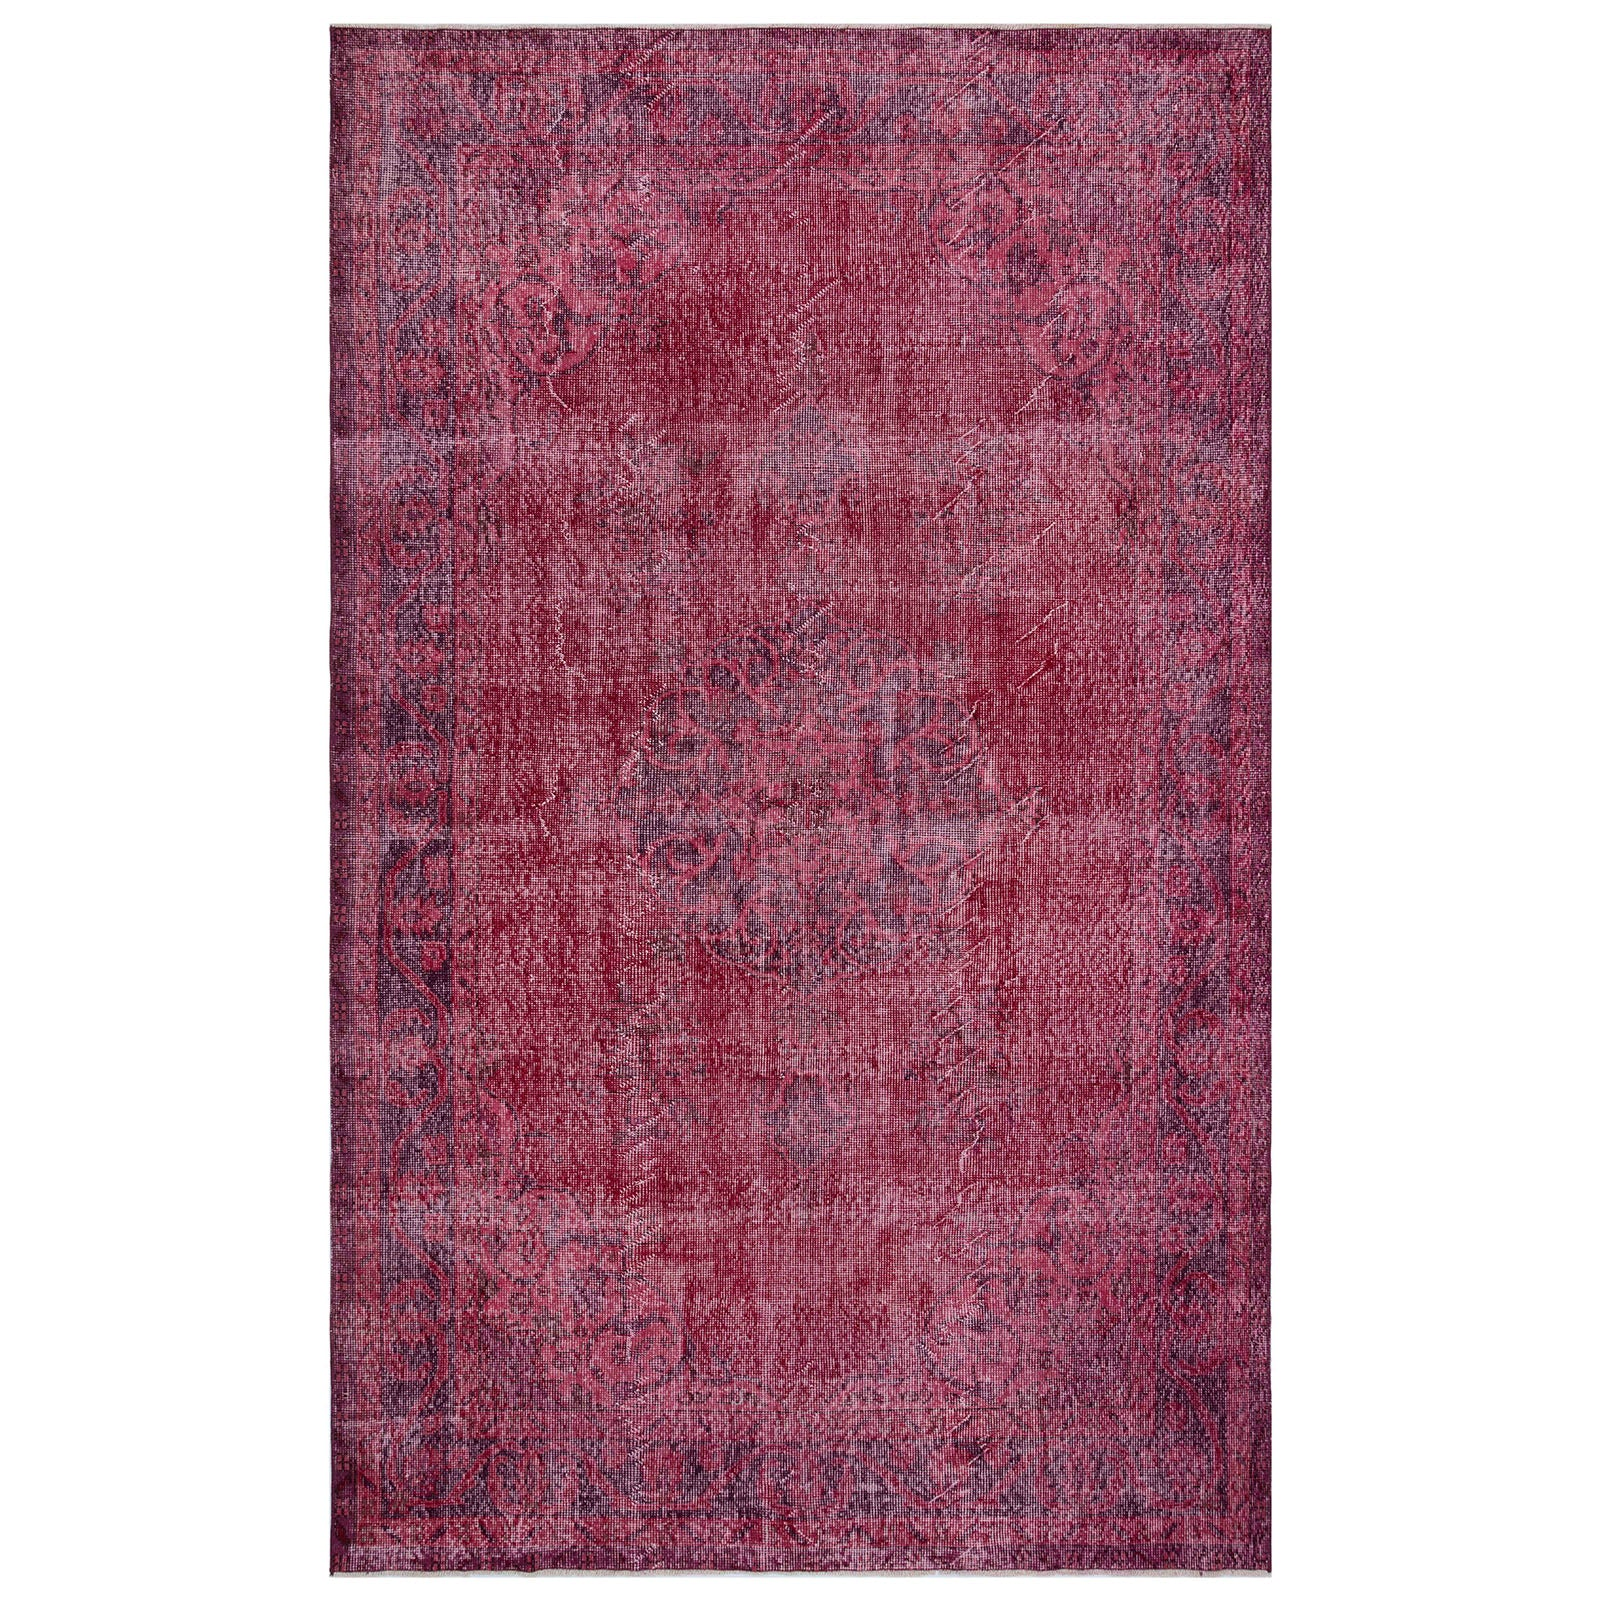 Hali 183X293  CM Bursa Handmade over dyed rug 1699 -  183*293 سجاده بورصة صناعة يدوية على بساط مصبوغ - Shop Online Furniture and Home Decor Store in Dubai, UAE at ebarza